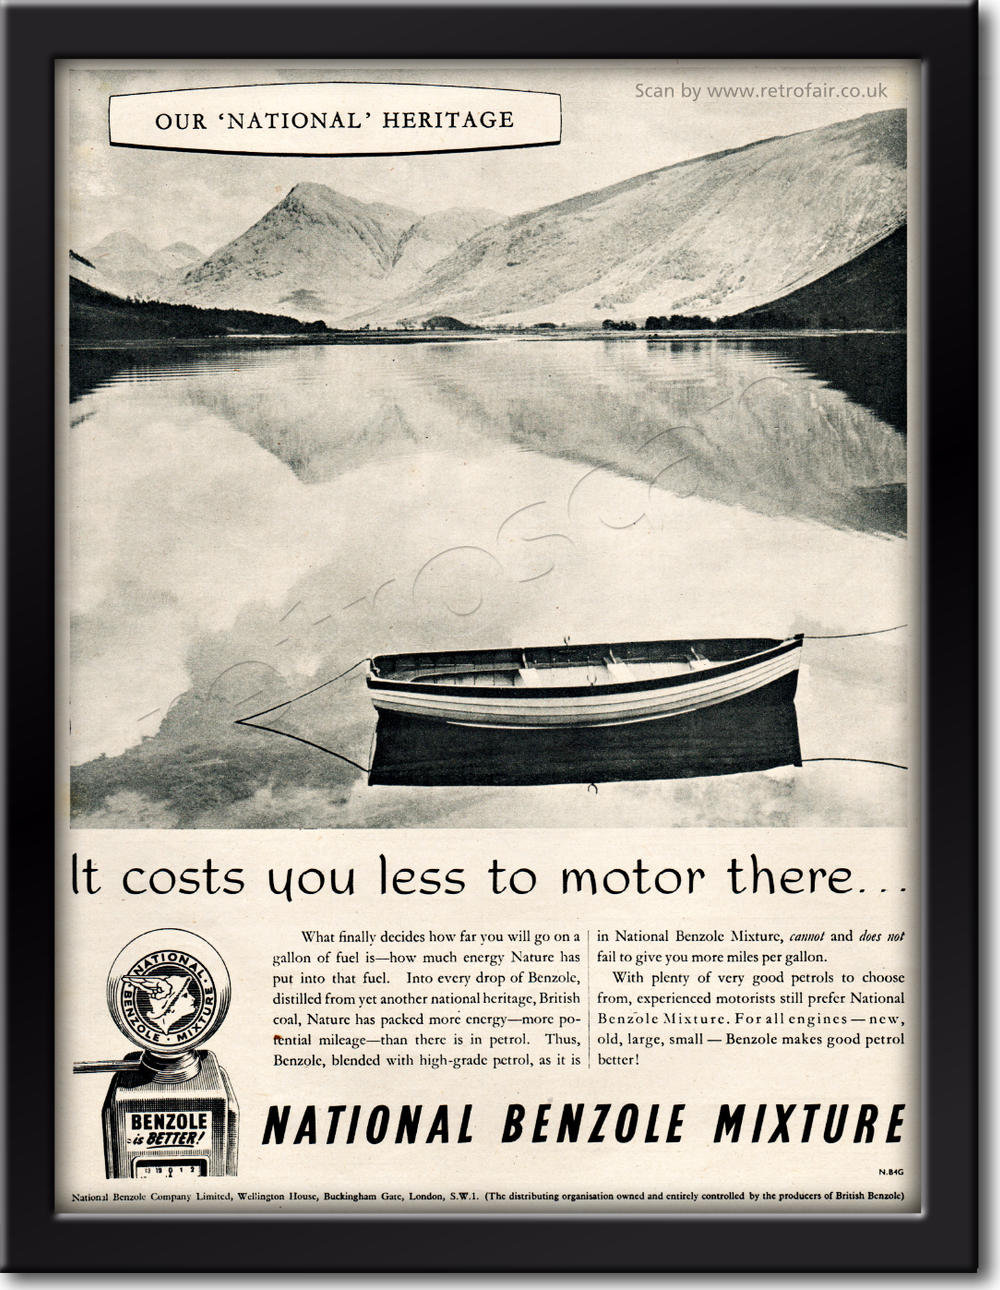 1954 vintage National Benzole advert